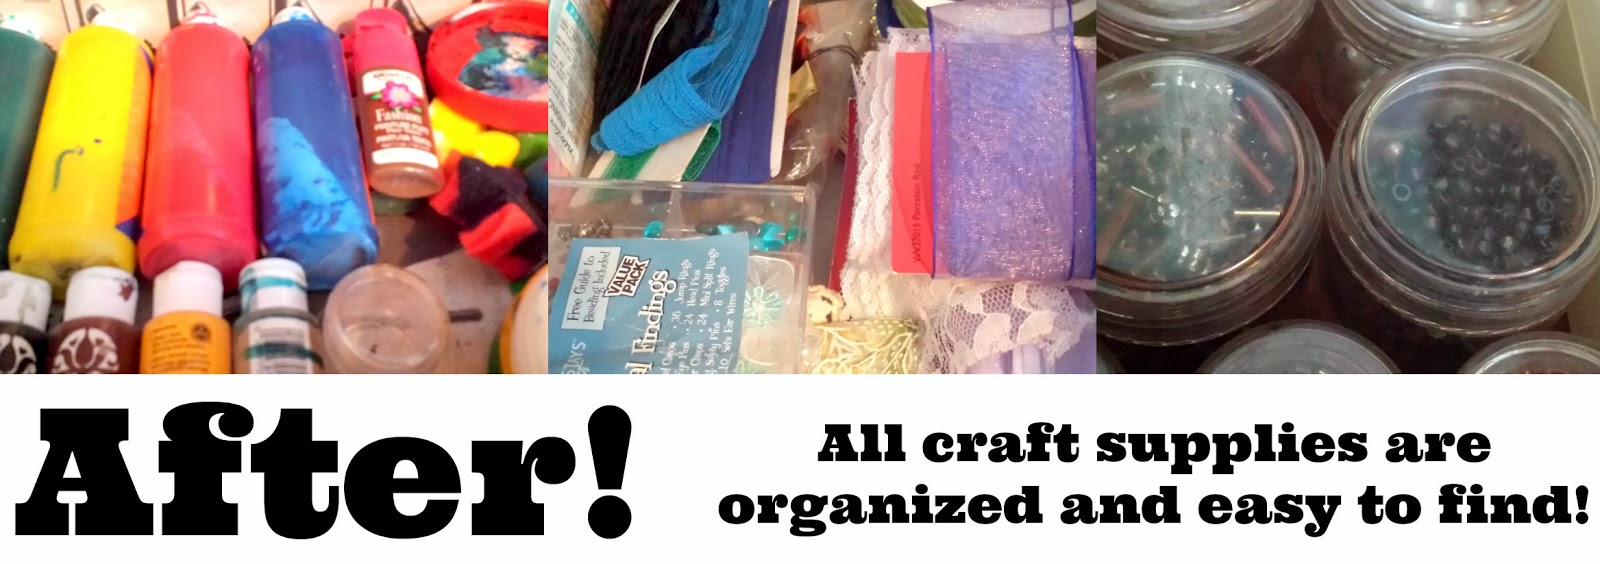 Organize your crafts